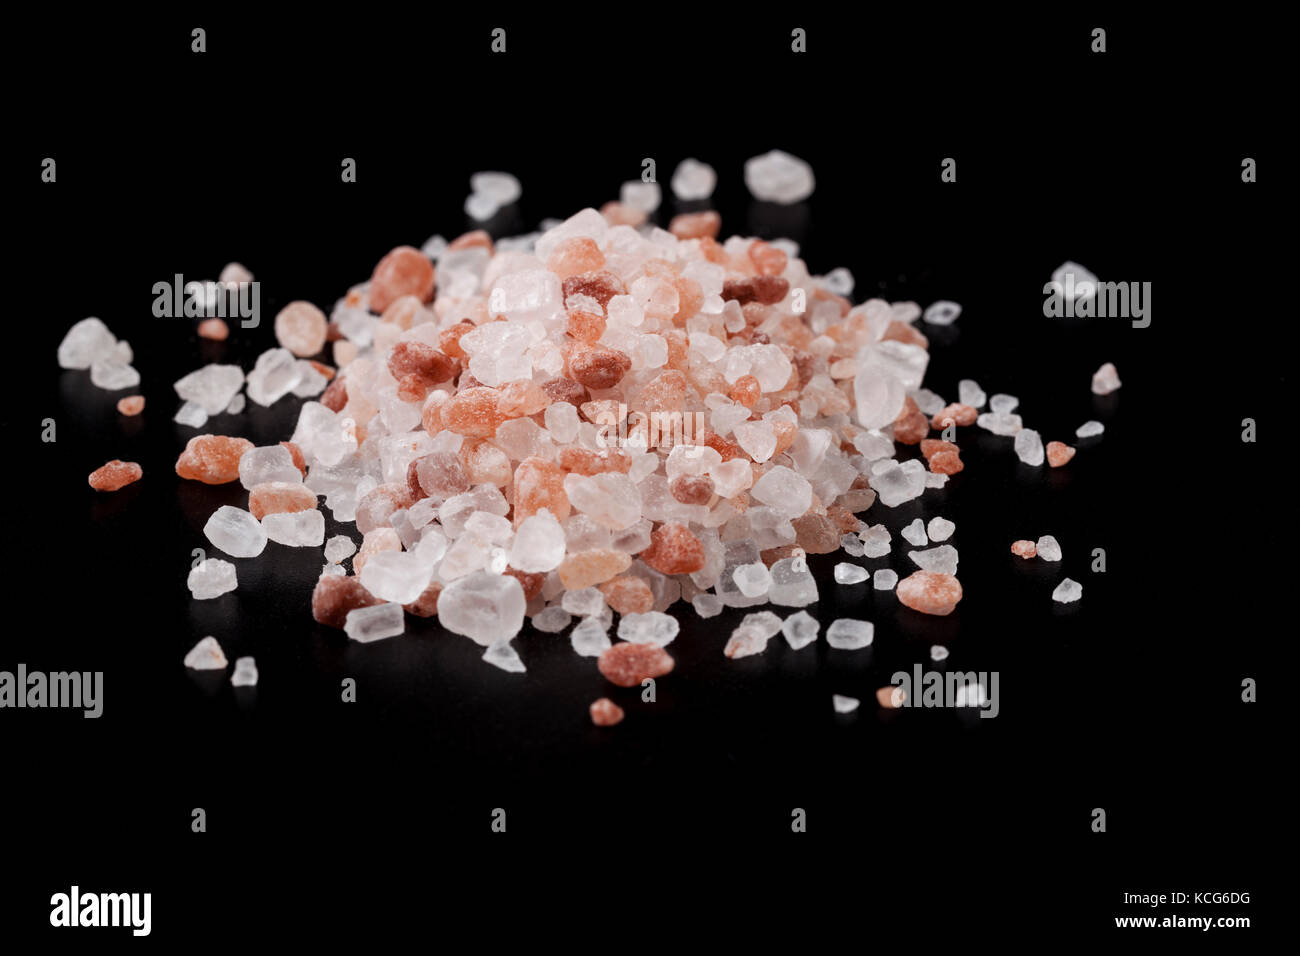 Pink Himalayan Salt Crystals on Black Background - Stock Image